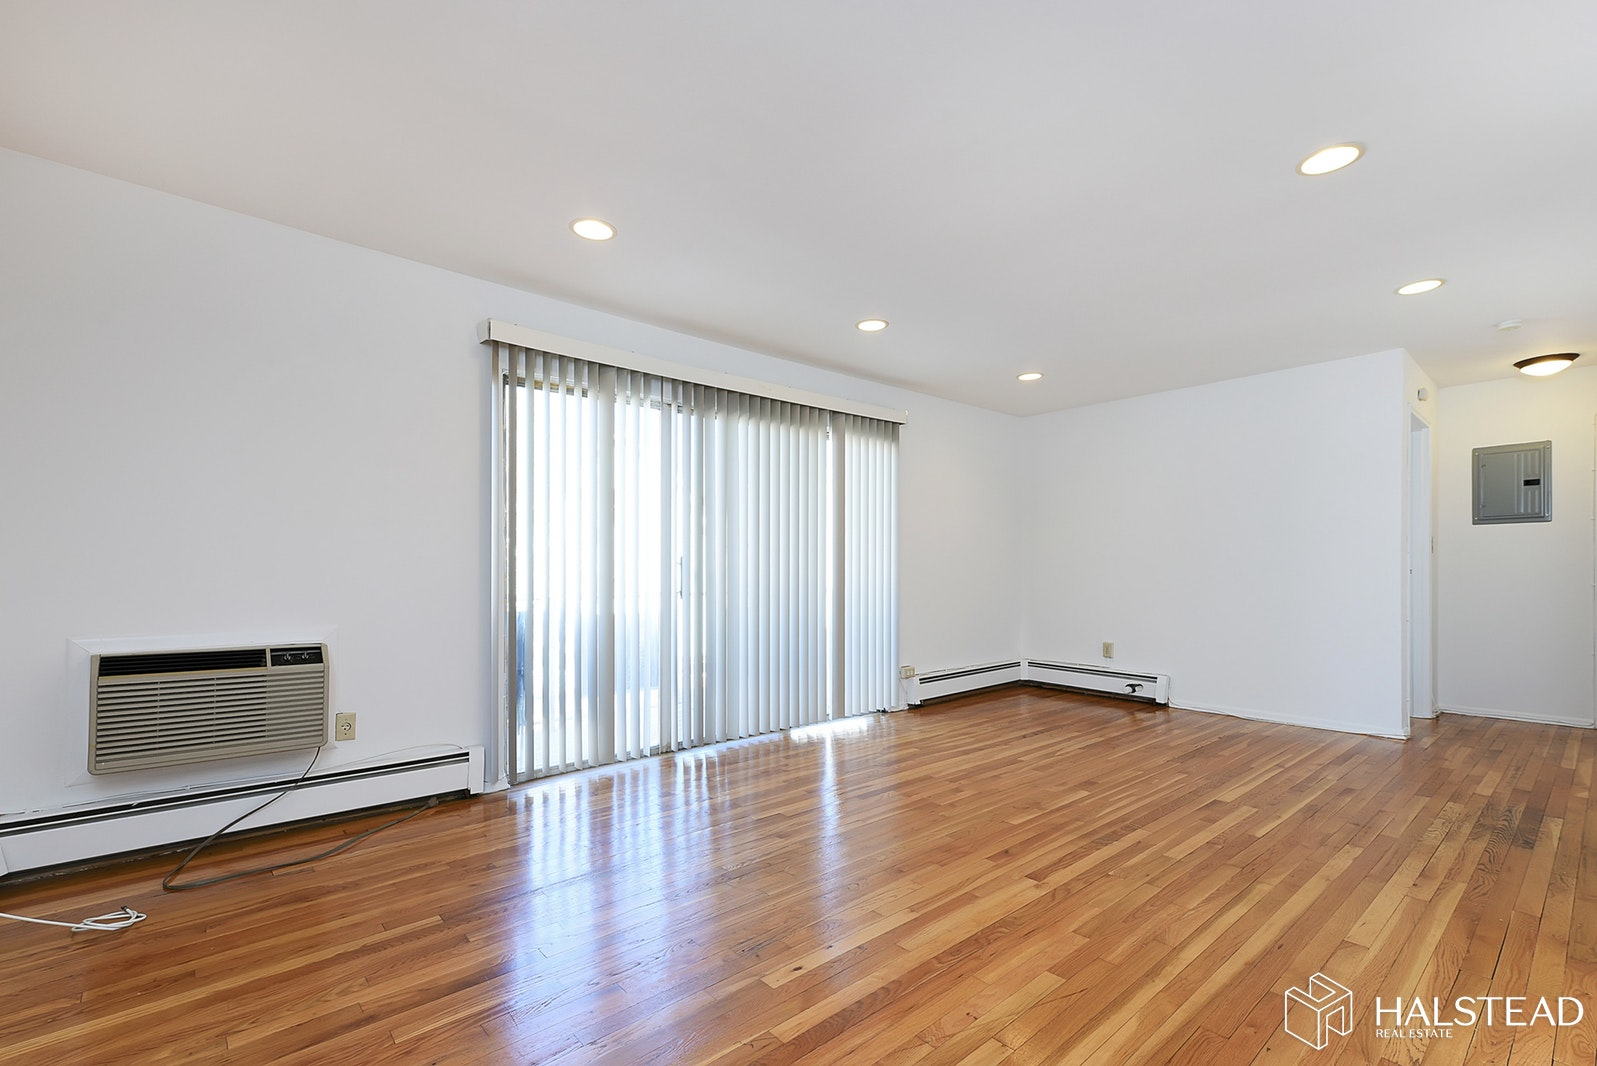 354 HOOVER AVE, Bloomfield, $220,000, Web #: 19964163